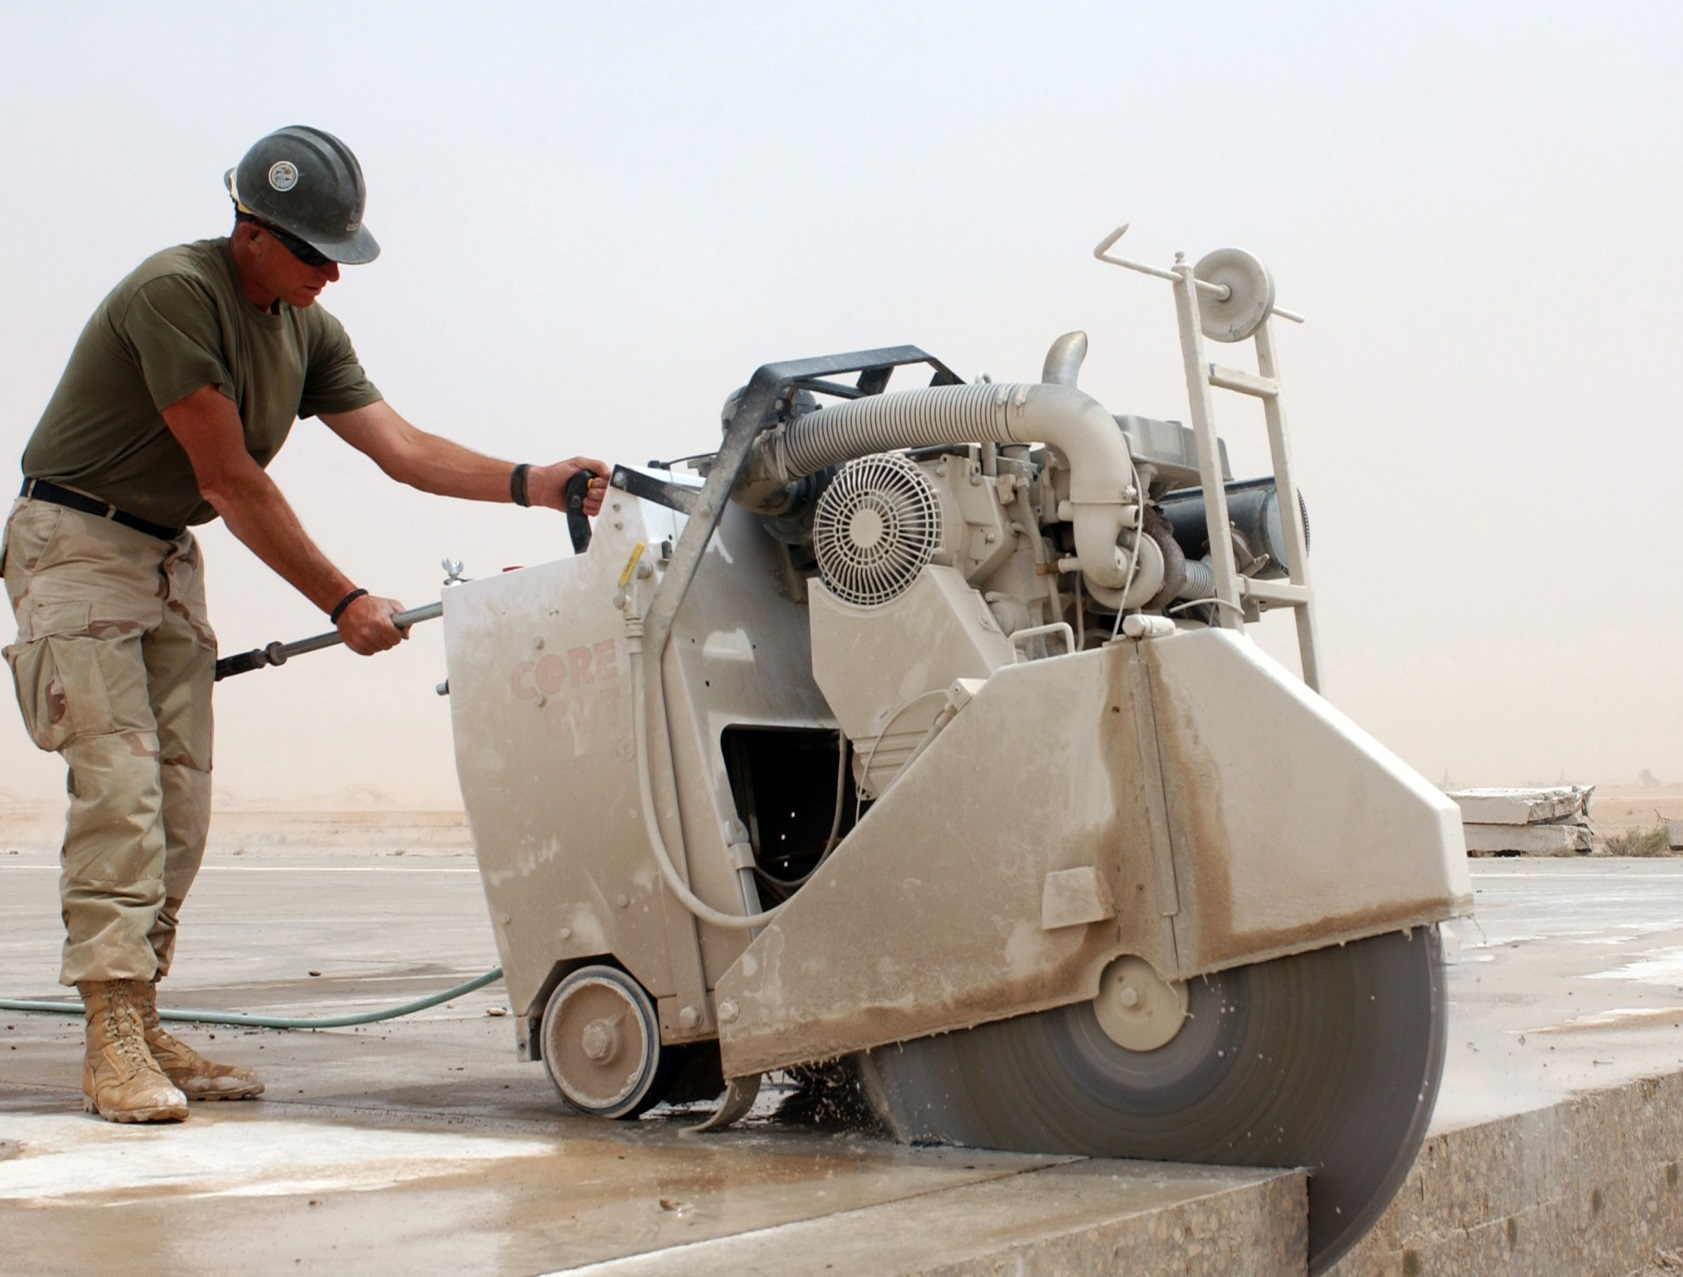 050512-N-4958O-001 Al Asad, Iraq (May 12, 2005) Ð U.S. Navy Builder 1st Class William White, assigned to Naval Mobile Construction Battalion Two Four (NMCB-24), uses a concrete saw to prepare an airfield runway expansion joint trench for repair, at the air base in Al Asad, Iraq. The Seabees of NMCB-24 are currently engaged in a massive airfield runway restoration at the airbase in Al Asad, Iraq. Two and a half miles of the baseÕs runways are being repaired, which will dramatically increase the baseÕs capability for air traffic and operations. U.S. Navy photo by Journalist 1st Class Mark H. Overstreet (RELEASED)